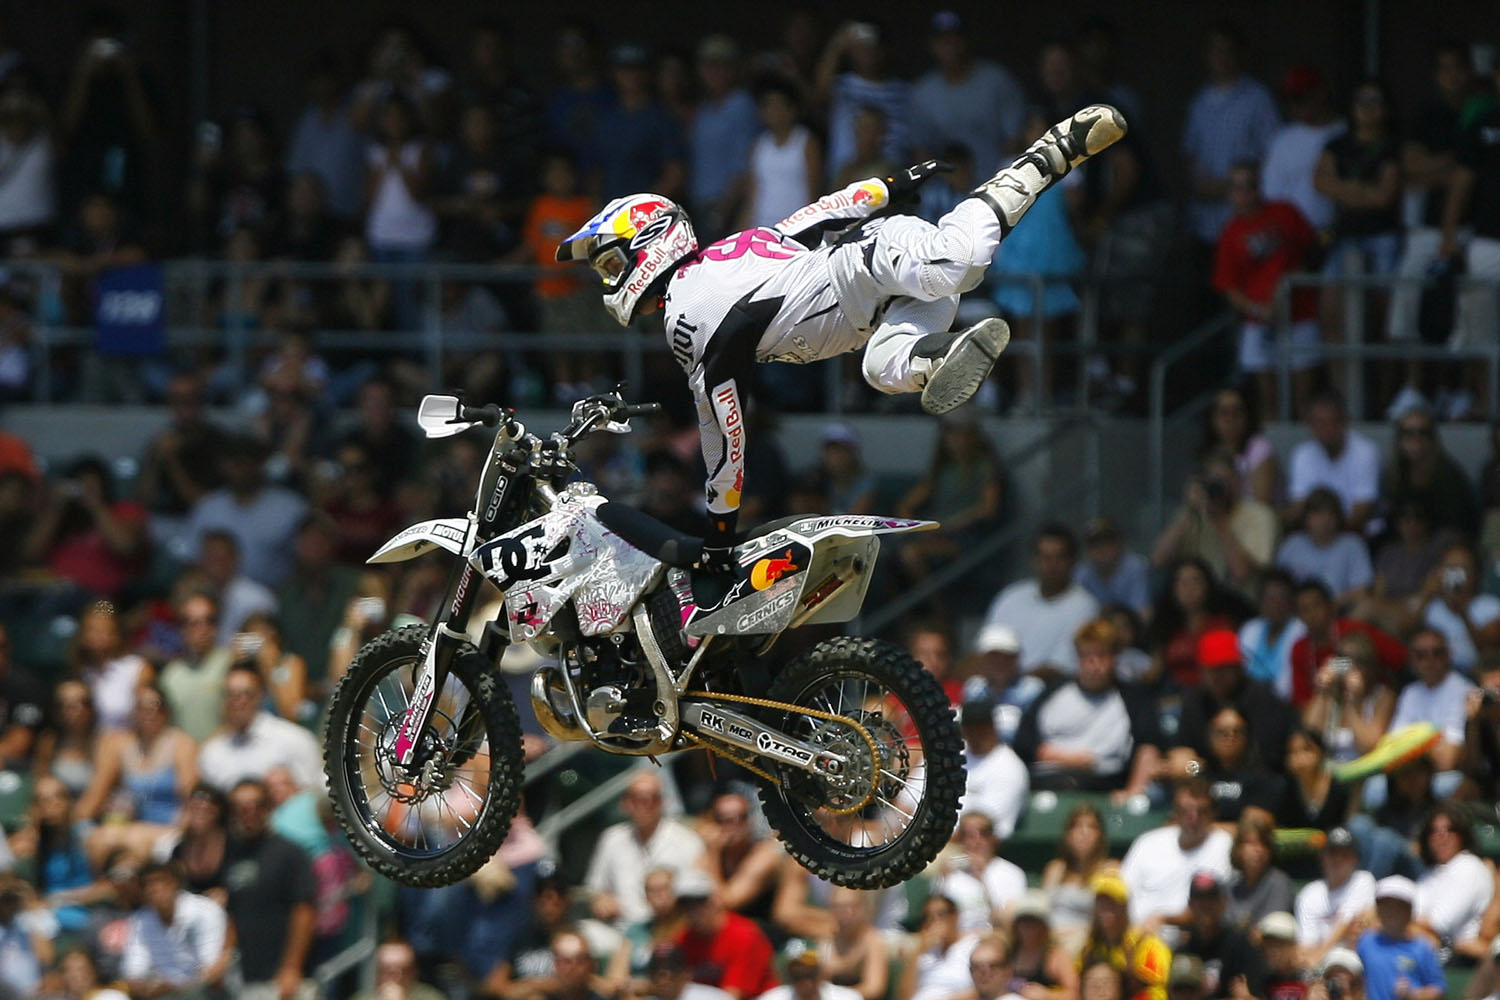 Gold medalist Travis Pastrana during Freestyle Moto X finals at X Games 12 at the Home Depot Center in Carson, California on August 6, 2006.